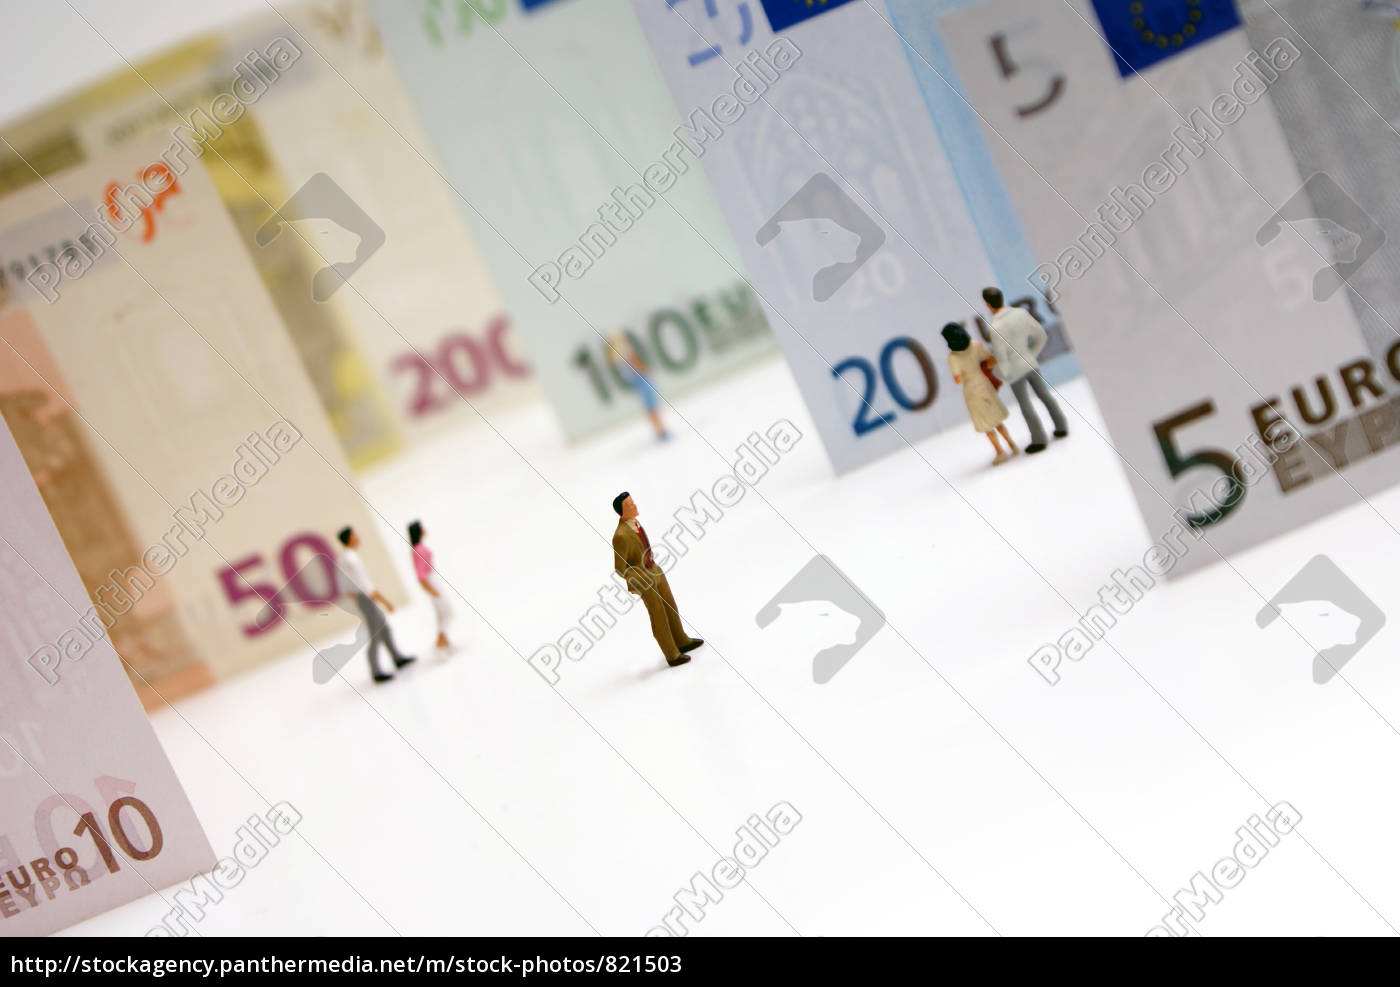 persons, from, euro, banknotes - 821503